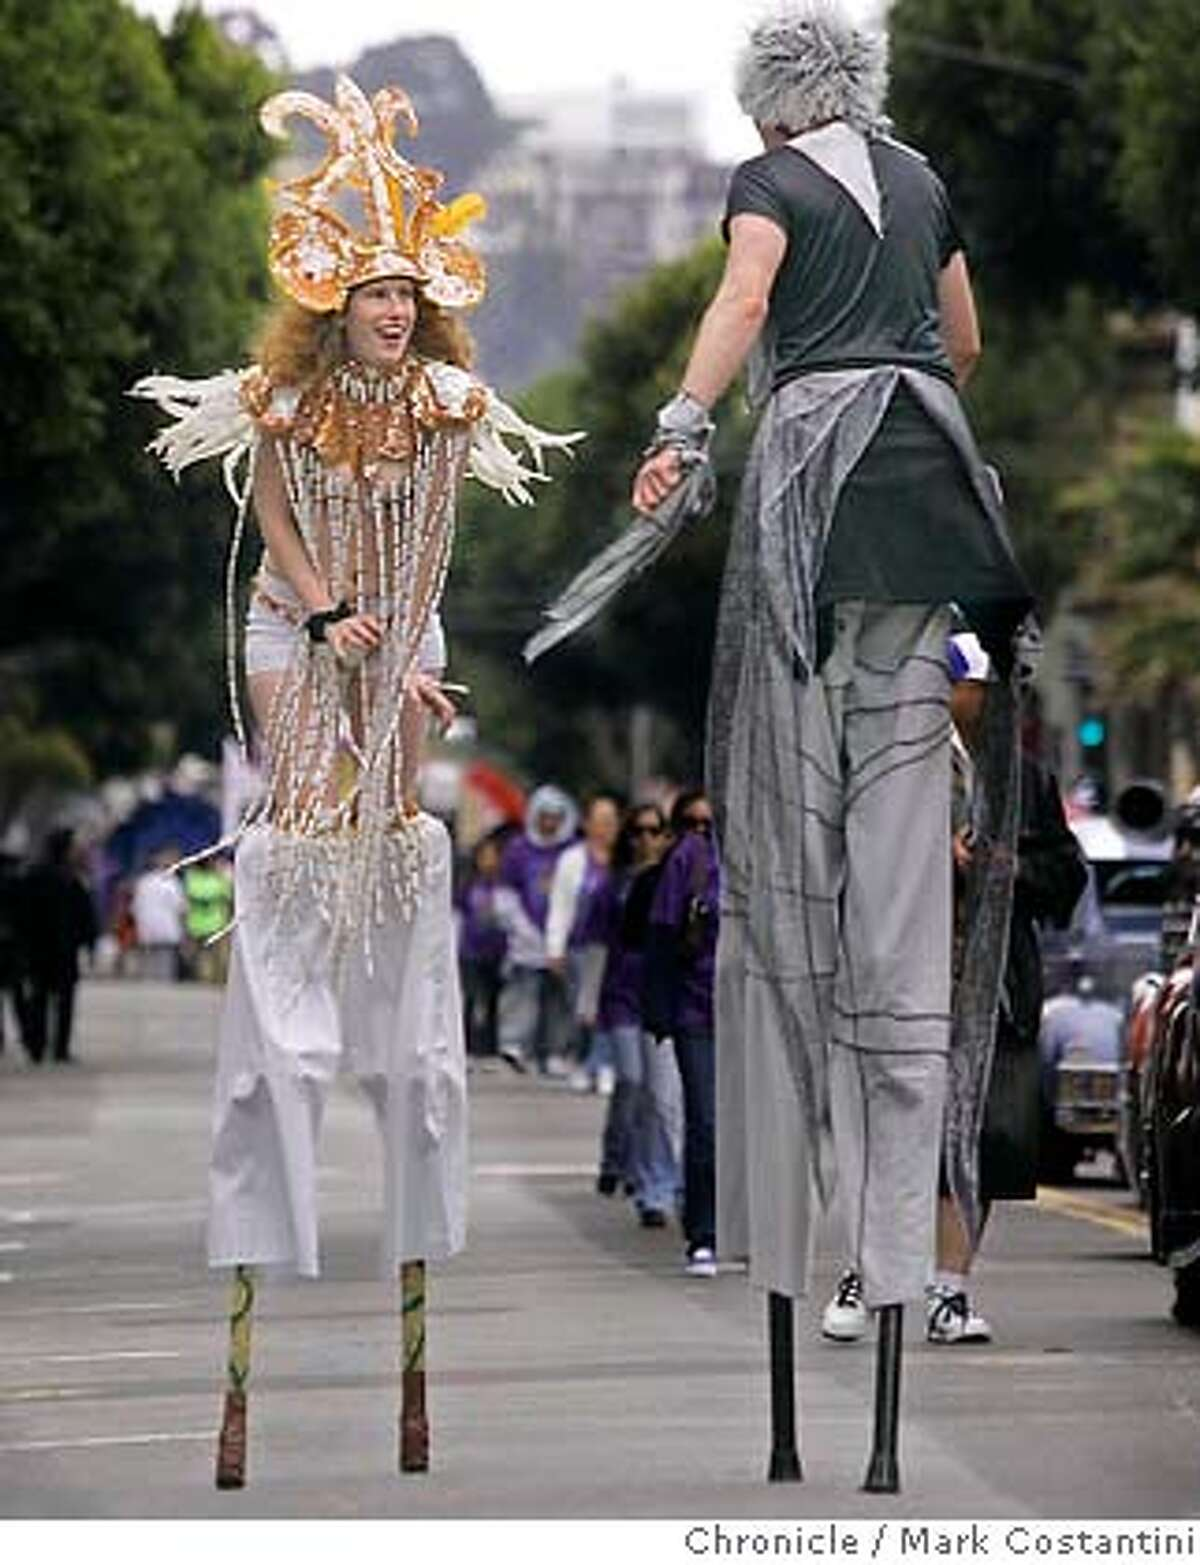 Stilted dancers on 24th St. at the annual parade held in the Mission district PHOTO: Mark Costantini / The Chronicle